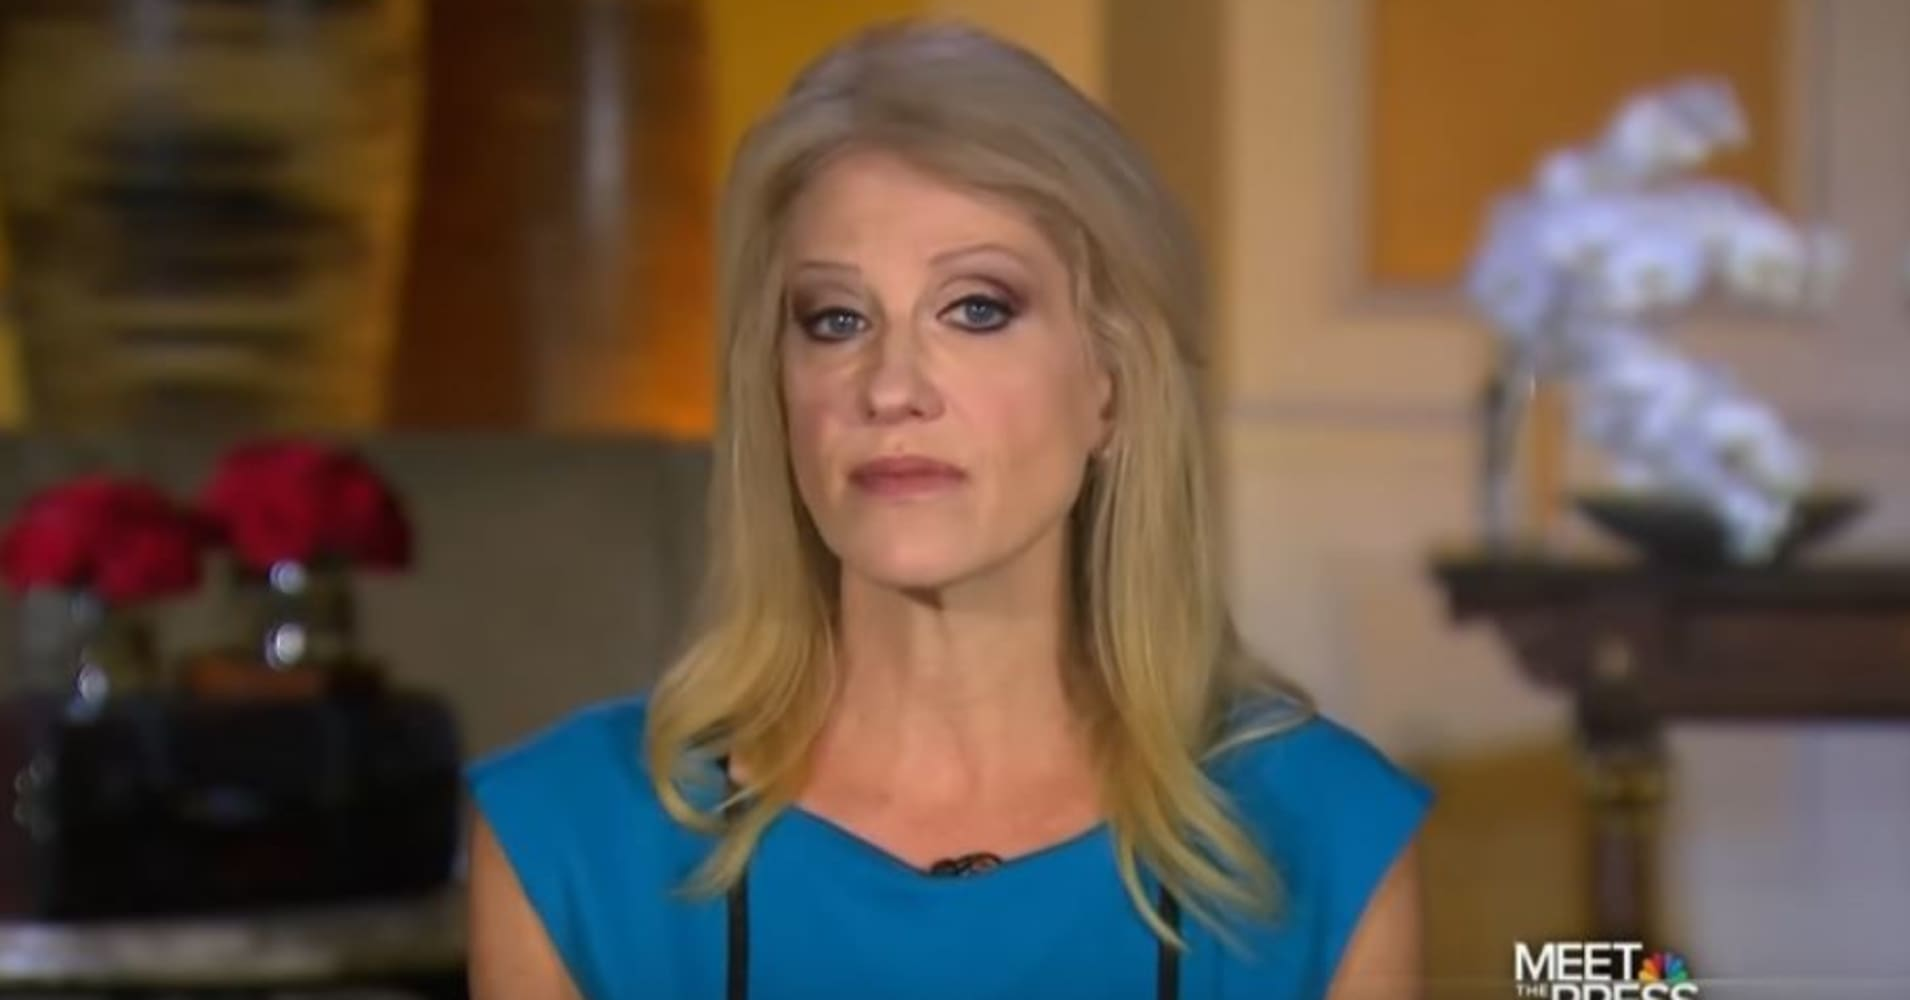 trump furious over kellyanne conway comments on sunday shows trump furious over kellyanne conway comments on sunday shows about romney sources